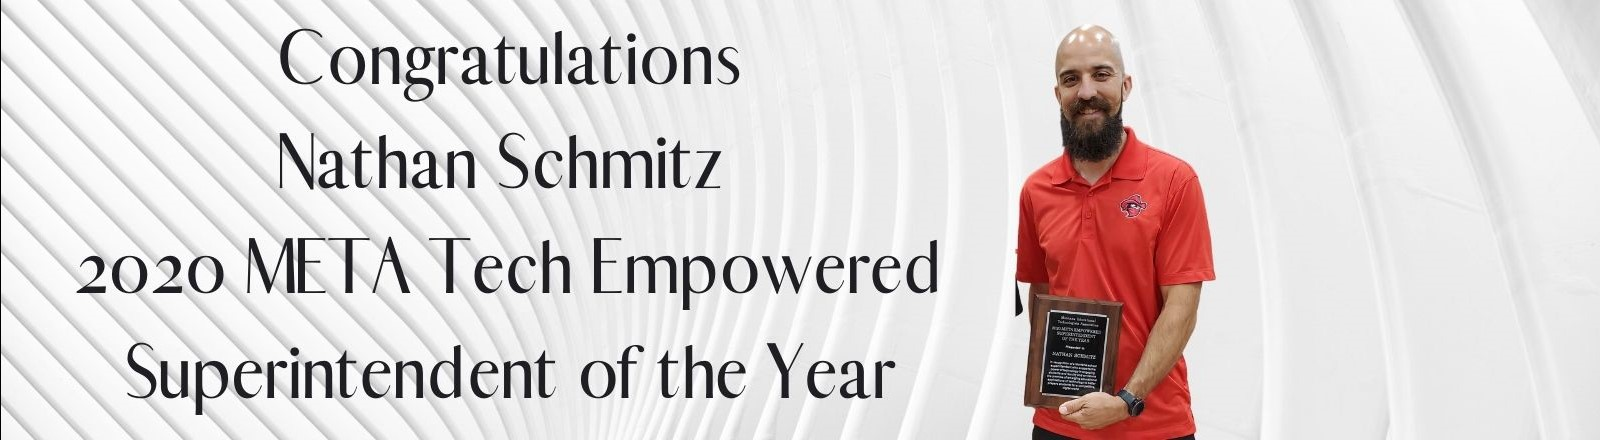 2020 META Tech Empowered Superintendent of the Year